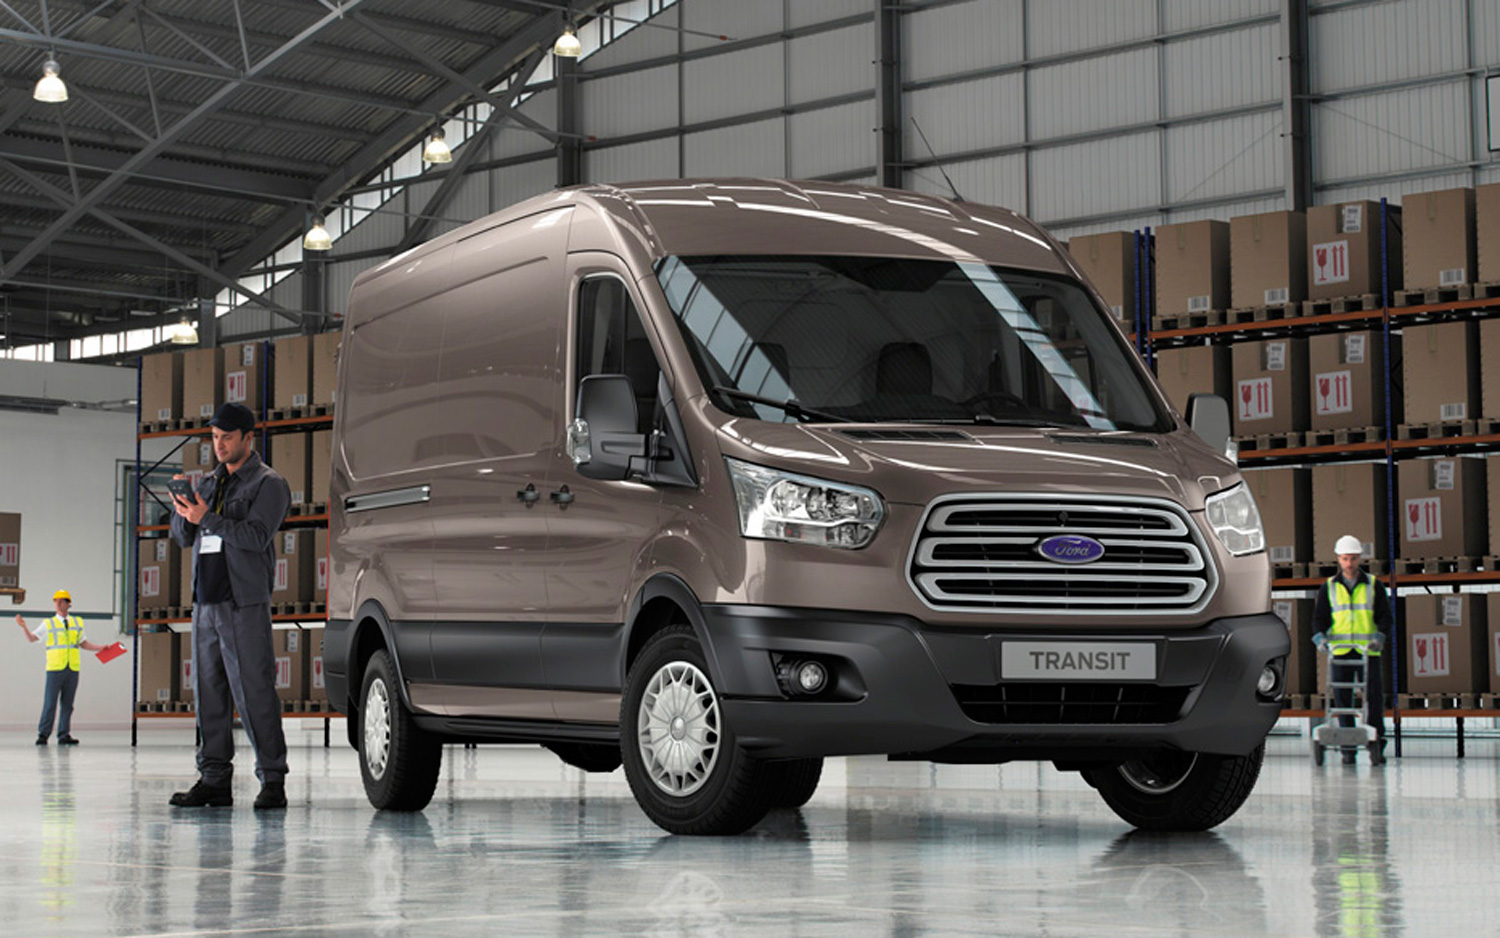 medium resolution of ford transit transit connect vans teased before u s launch